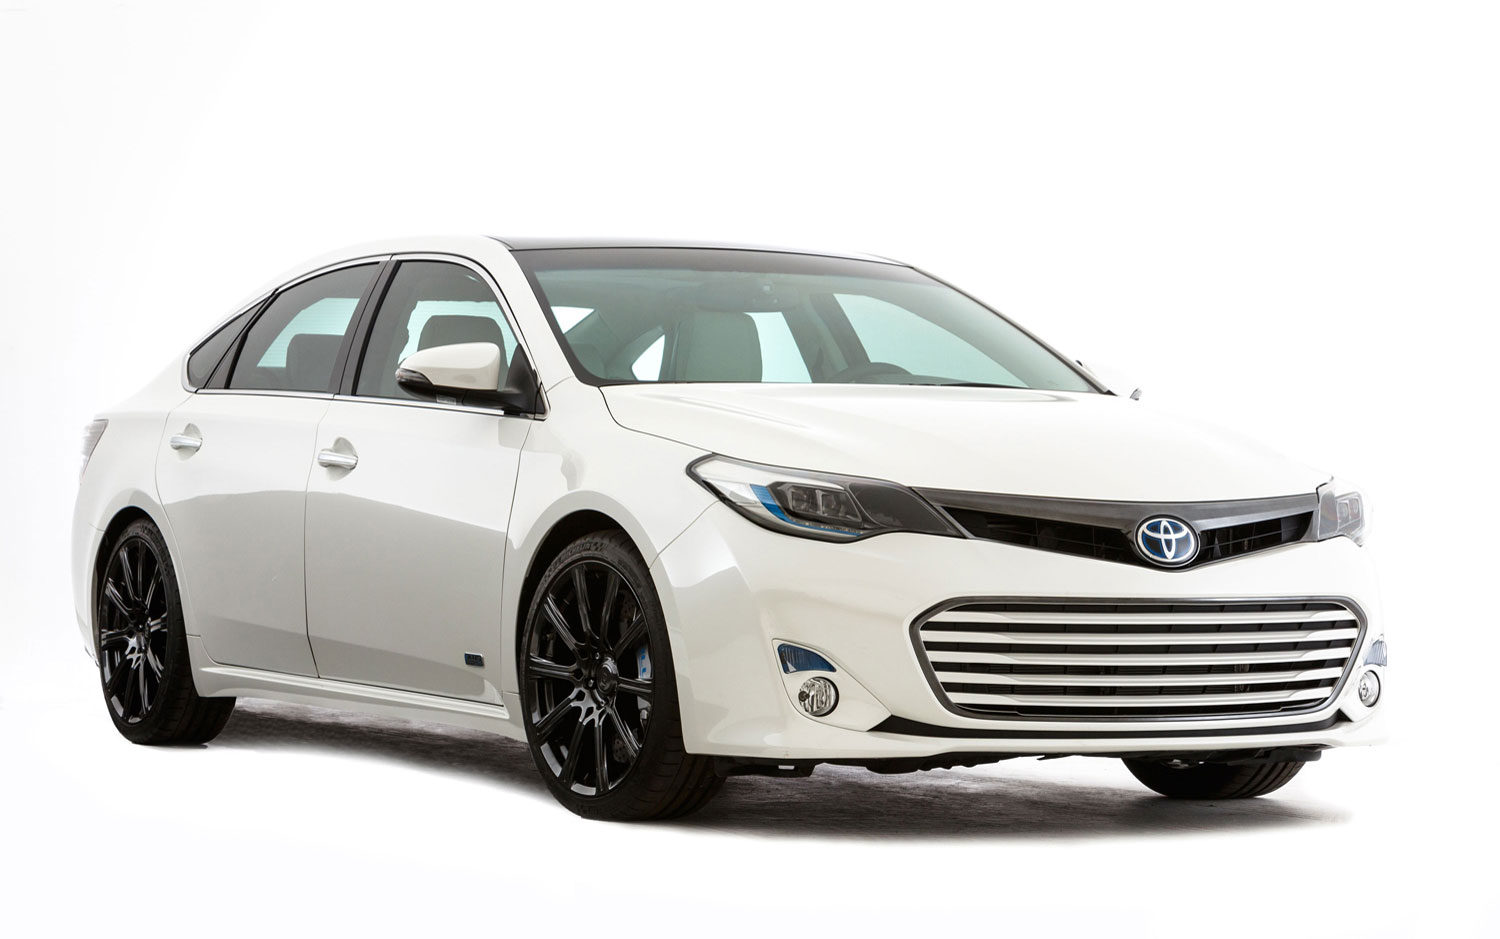 kws cars wallpapers concept 2013 toyota avalon. Black Bedroom Furniture Sets. Home Design Ideas